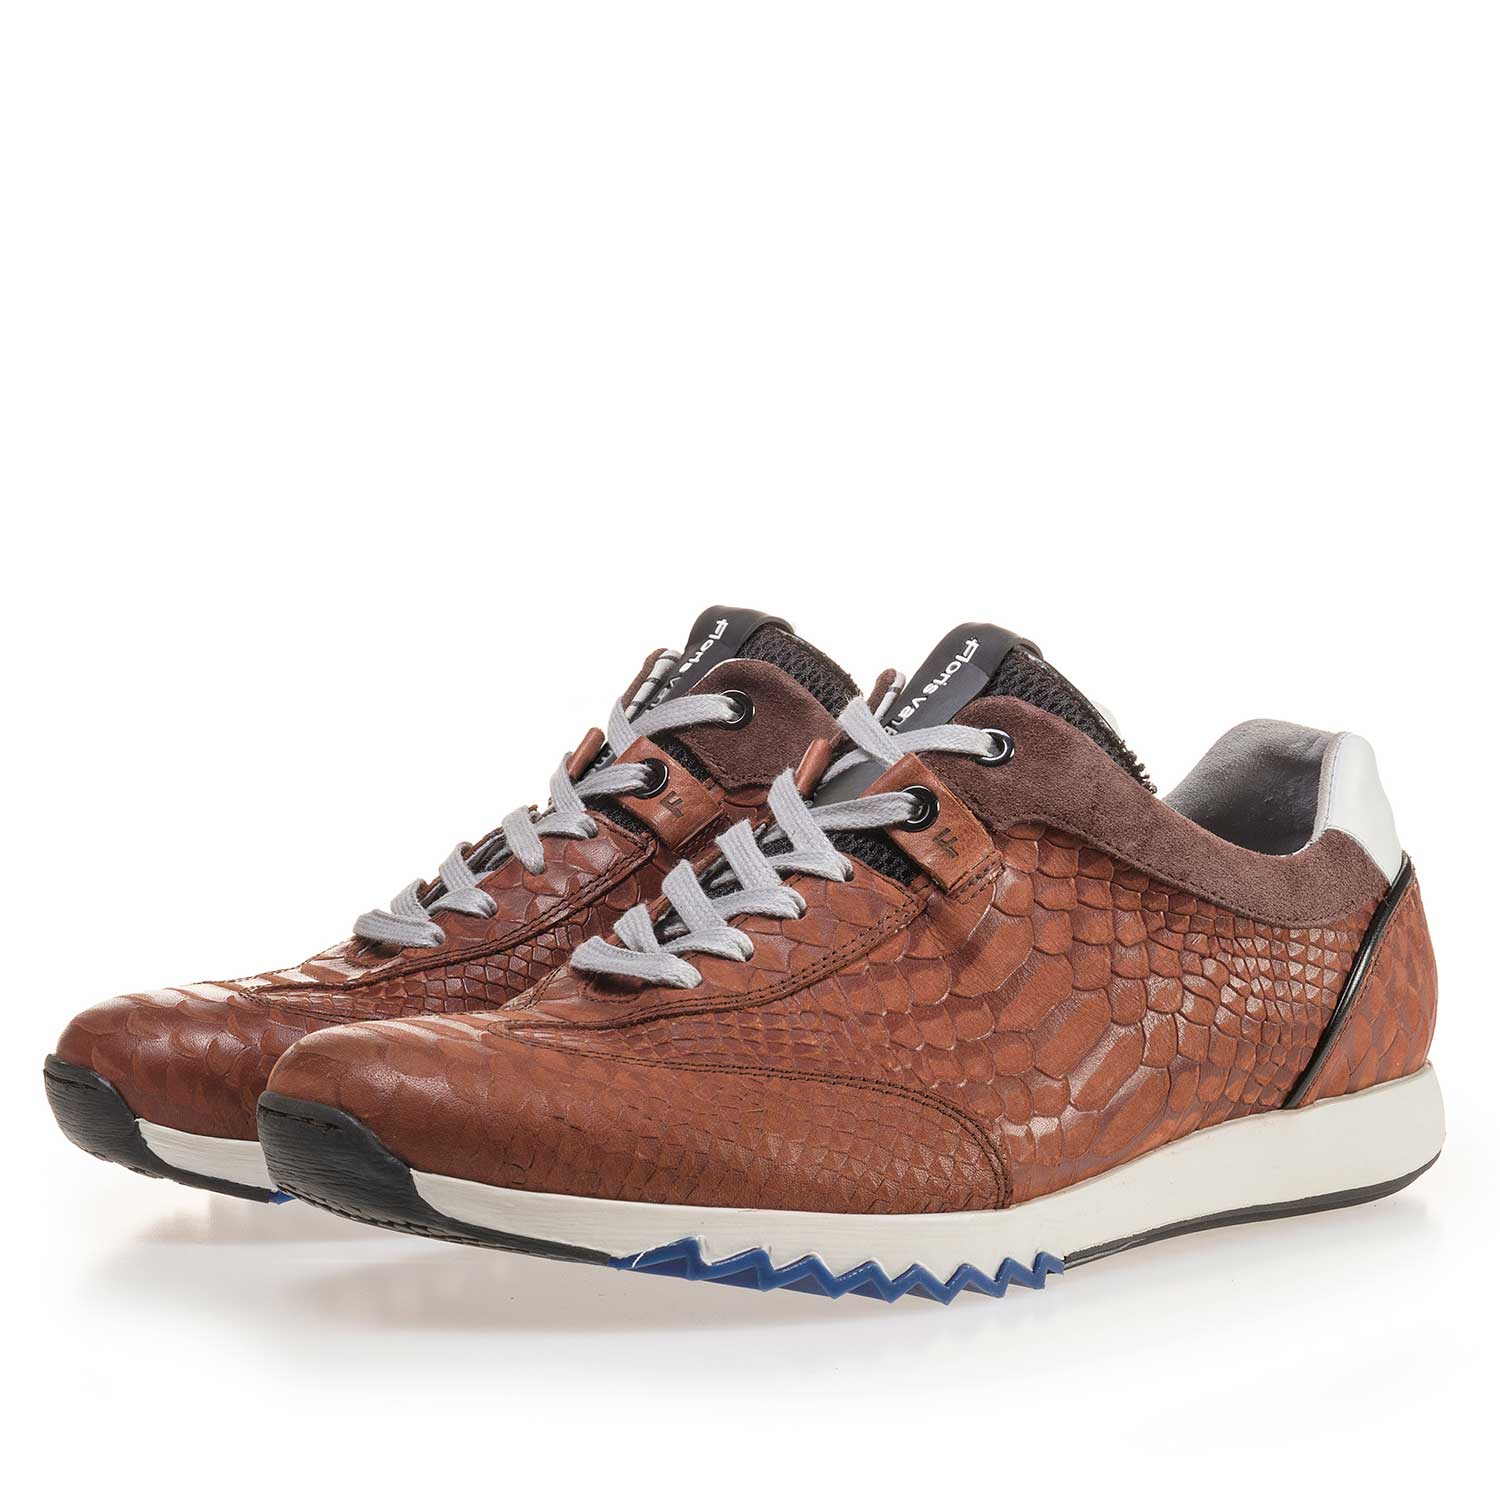 16219/03 - Cognac-coloured leather sneaker with a snake print